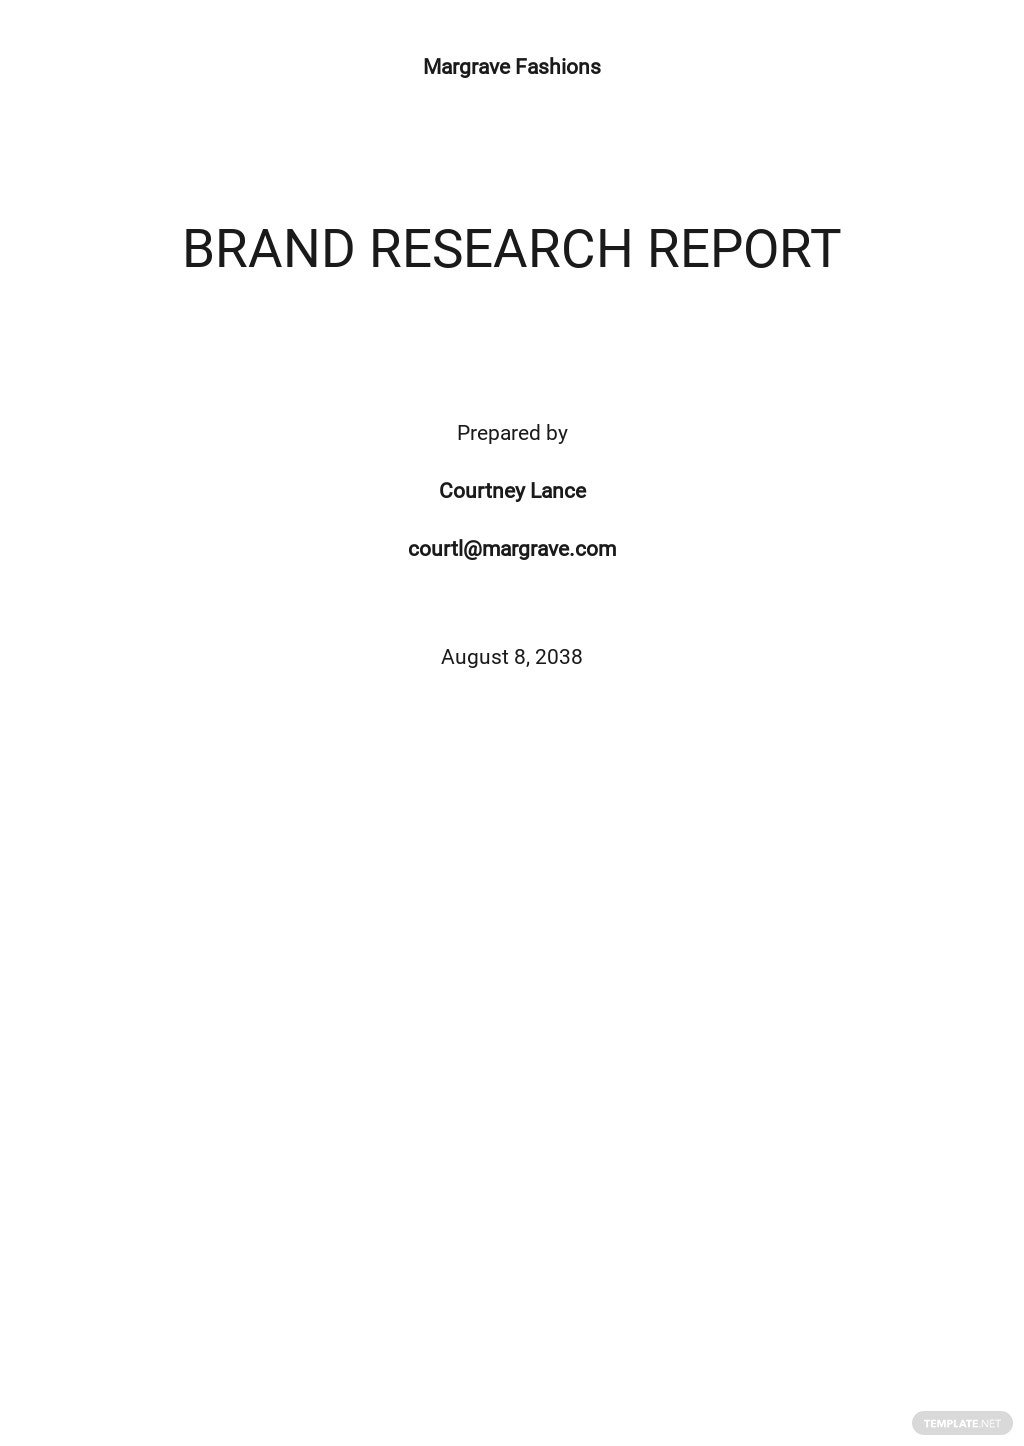 Brand Research Report Template